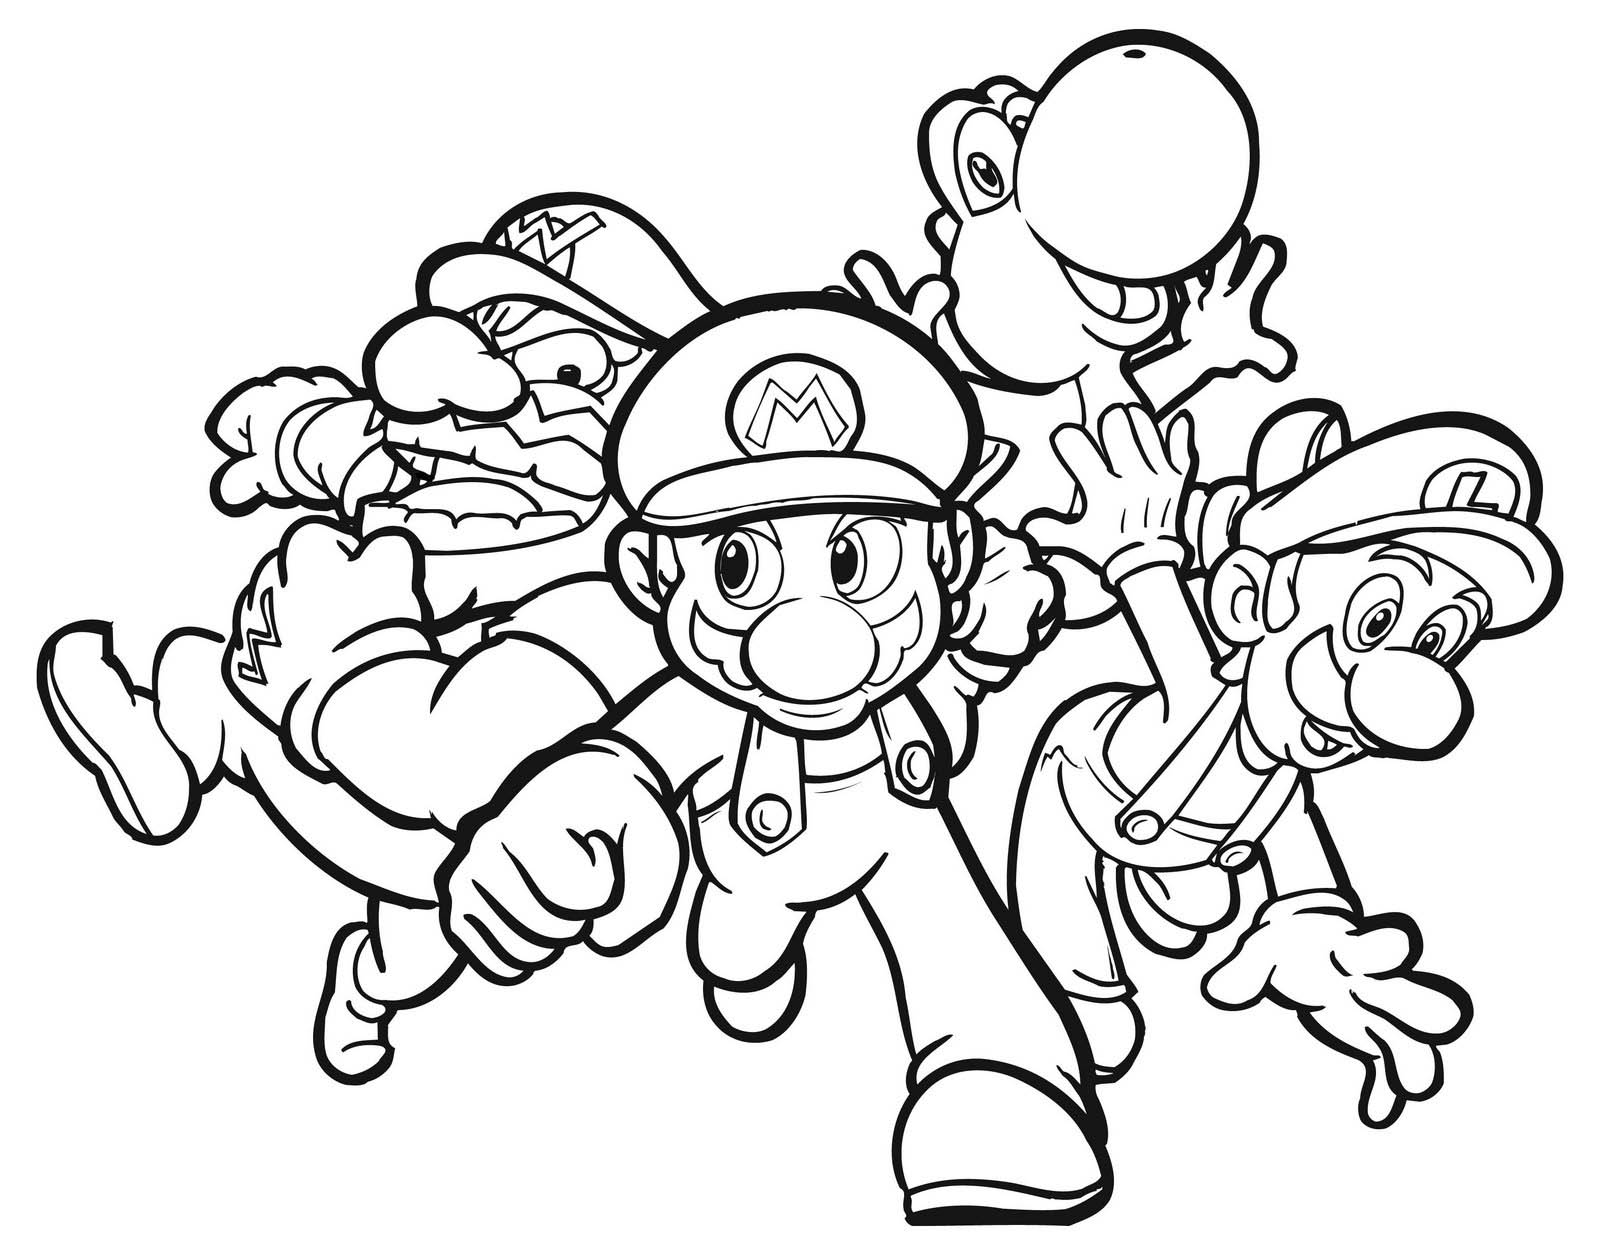 1600x1255 Download Coloring Pages. Hard Coloring Pages Hard Coloring Pages